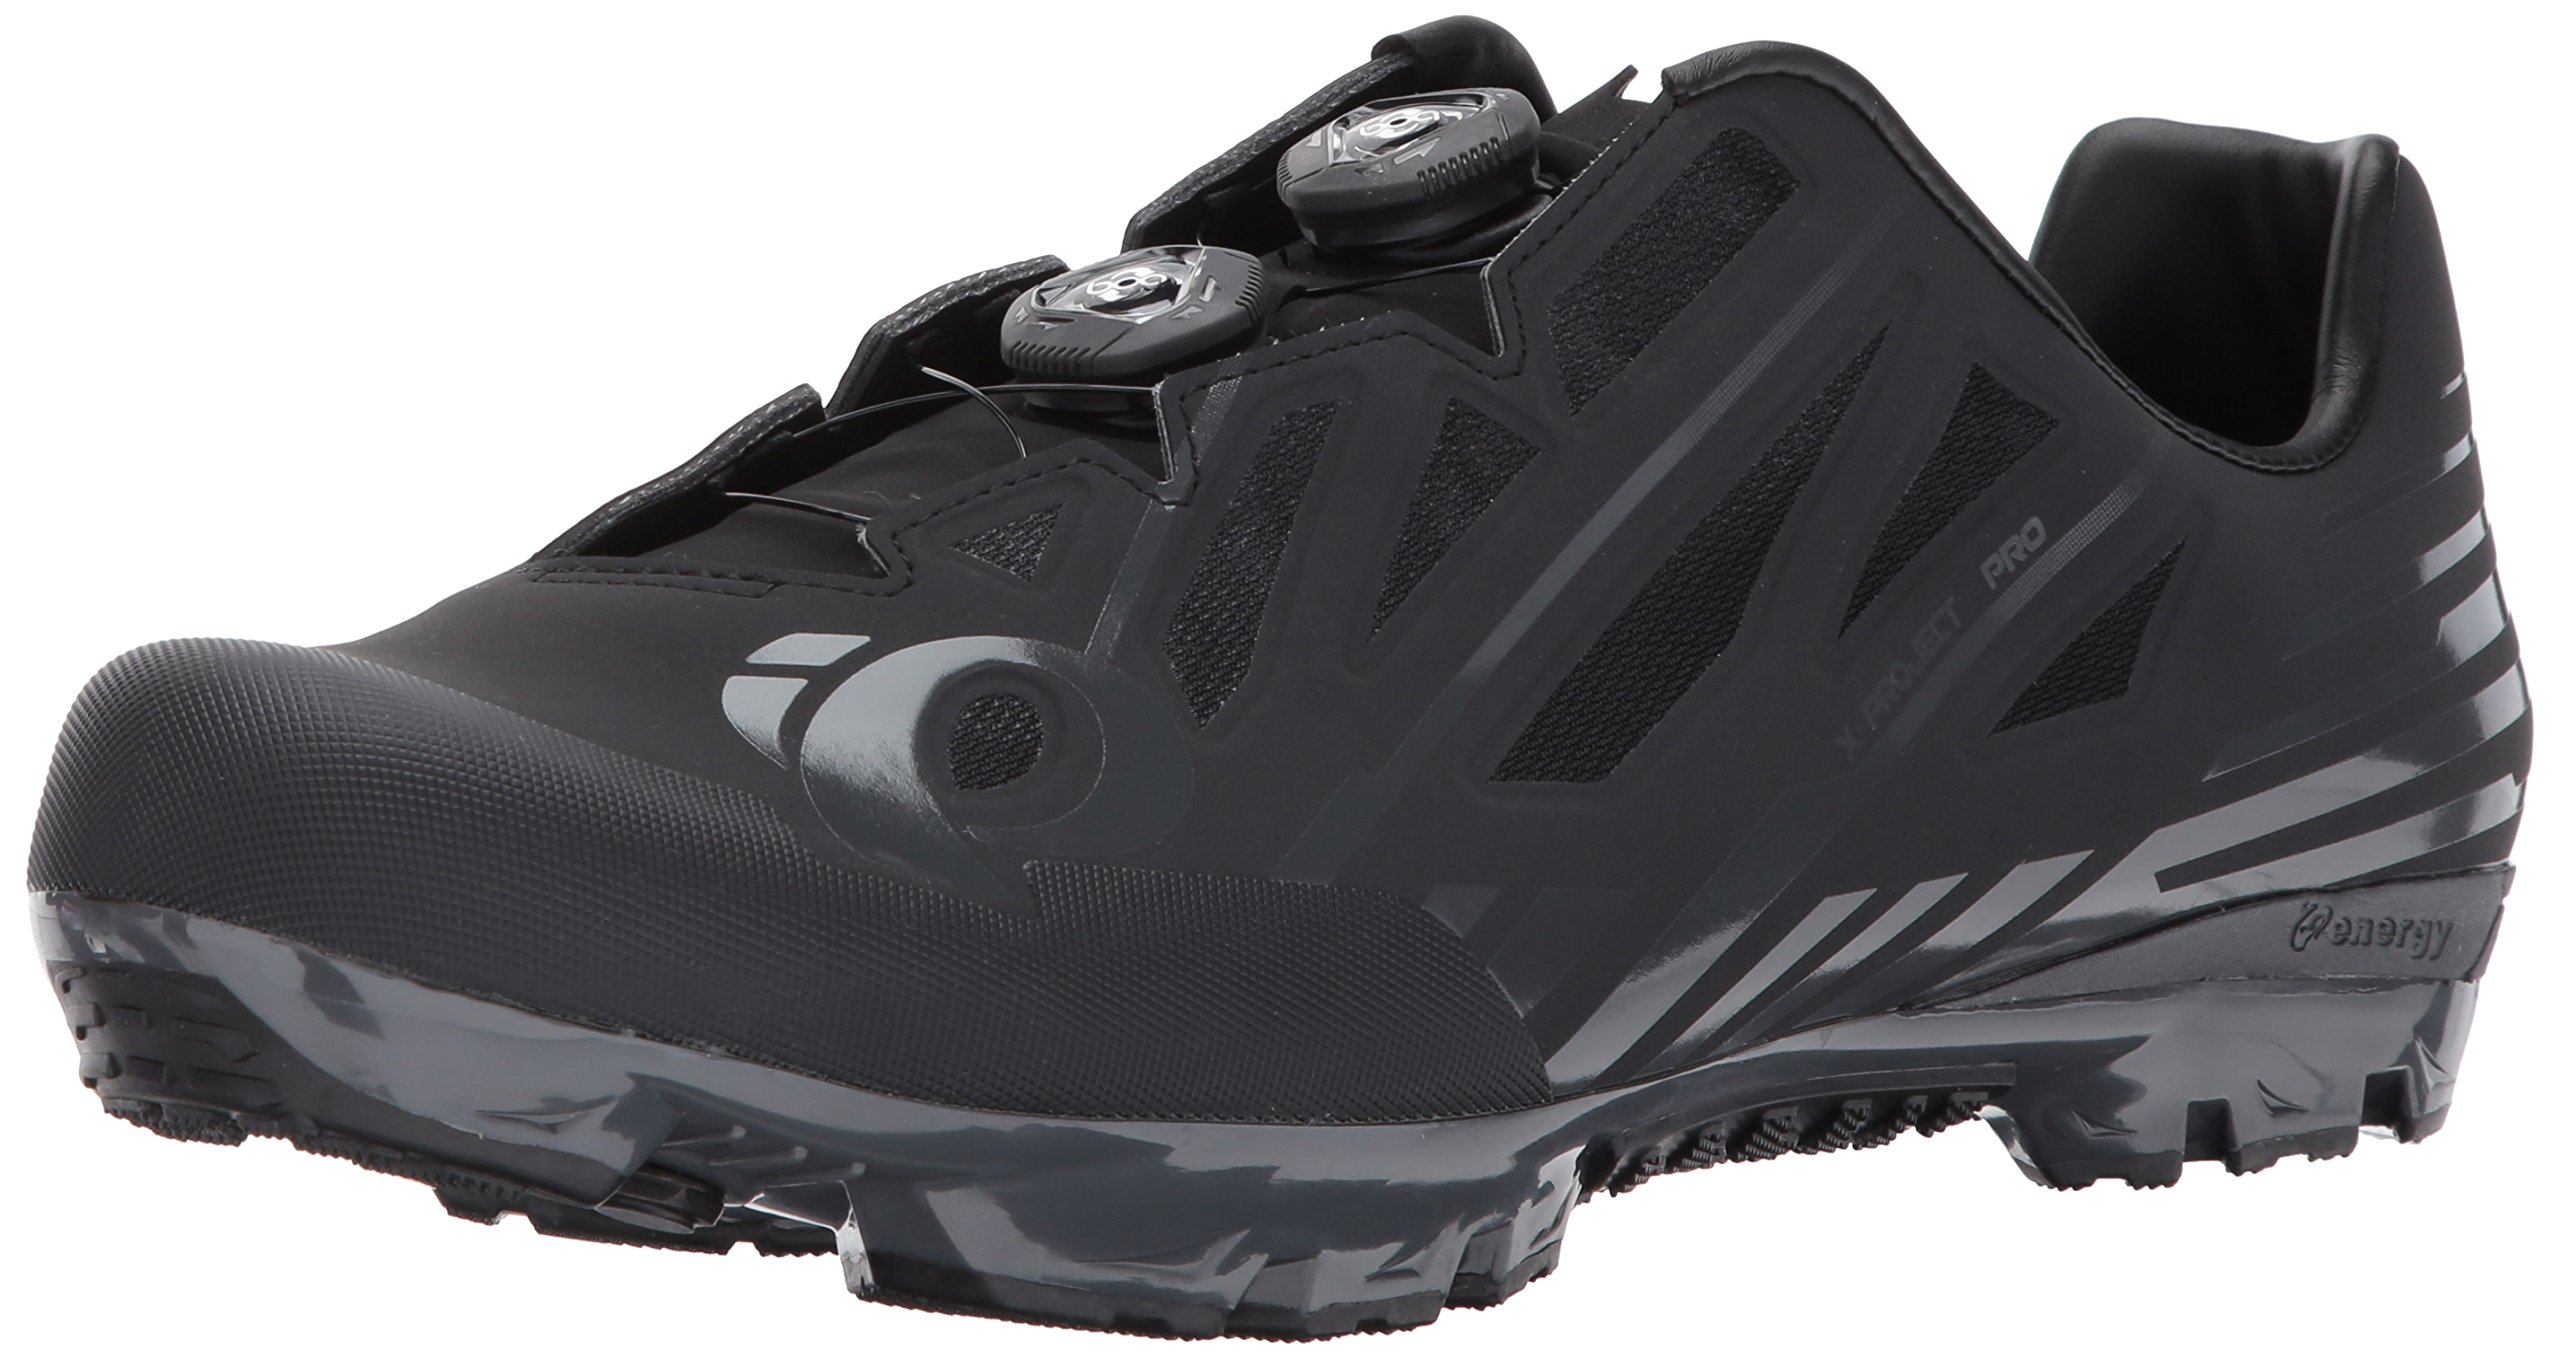 Pearl Izumi X-Project Pro Cycling-Footwear, Black/Shadow Grey, 46.5 EU/12 D US